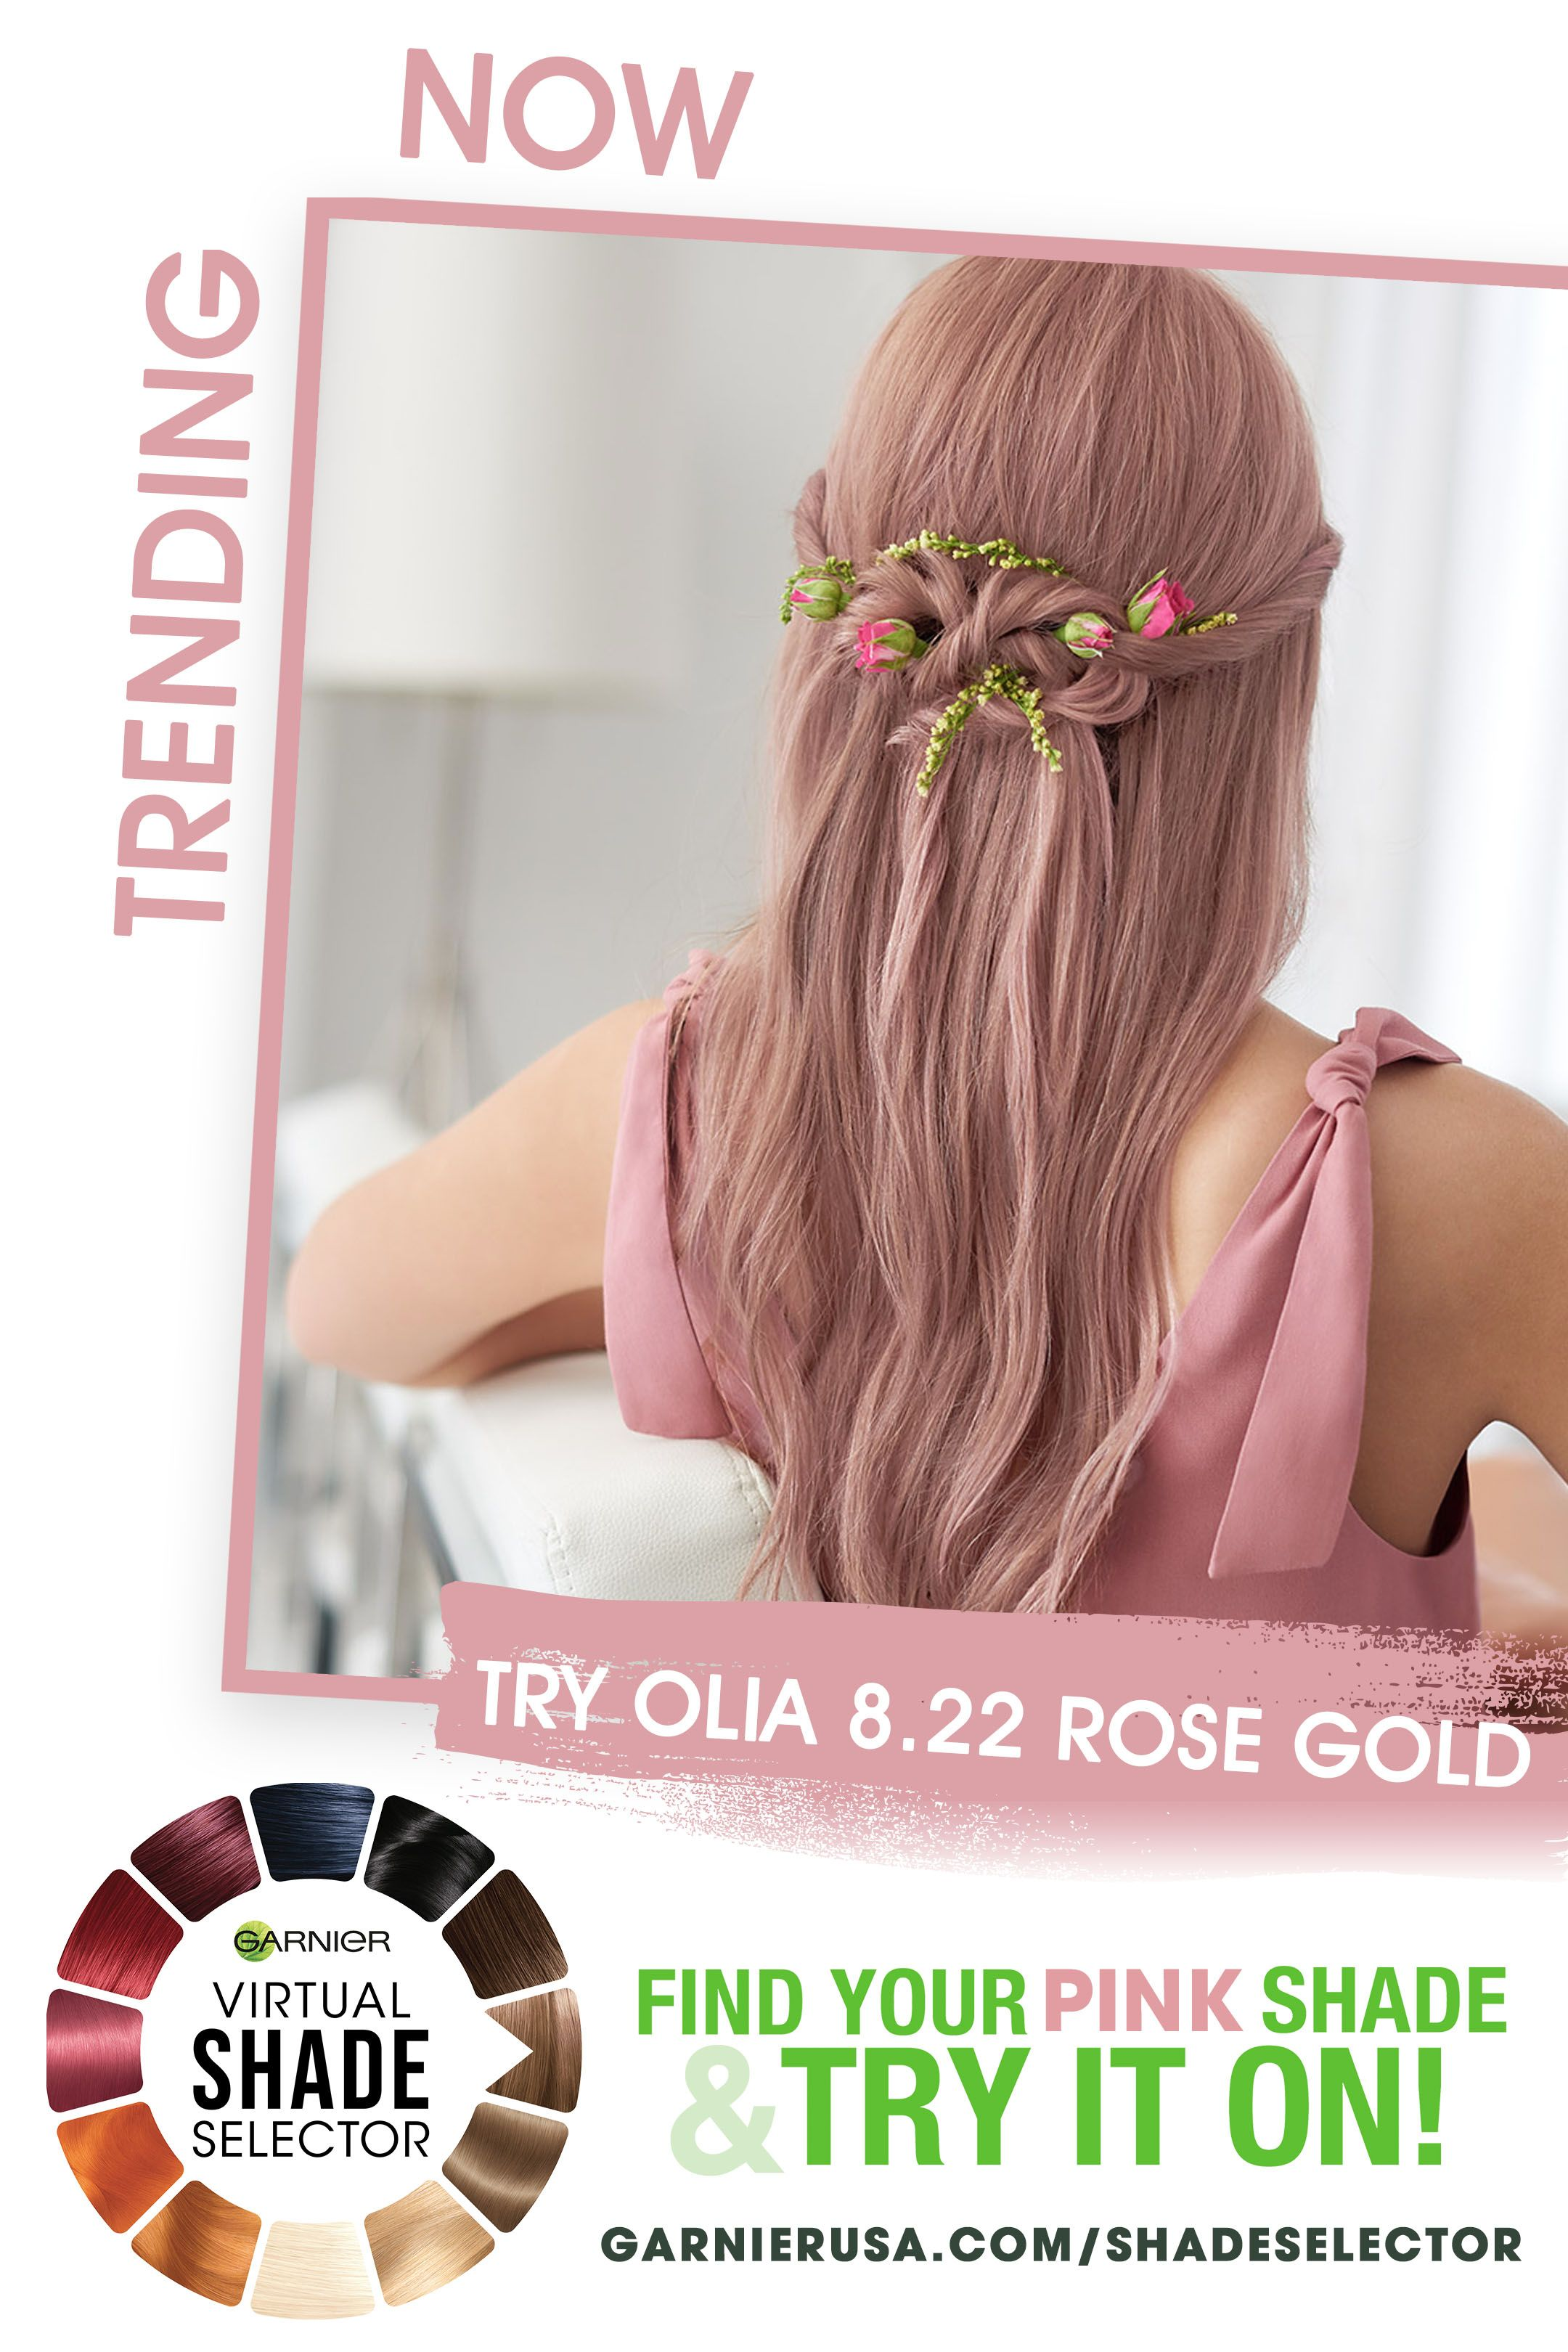 Pink Hair Hair Color Rose Gold Virtual Hair Color Rose Gold Hair